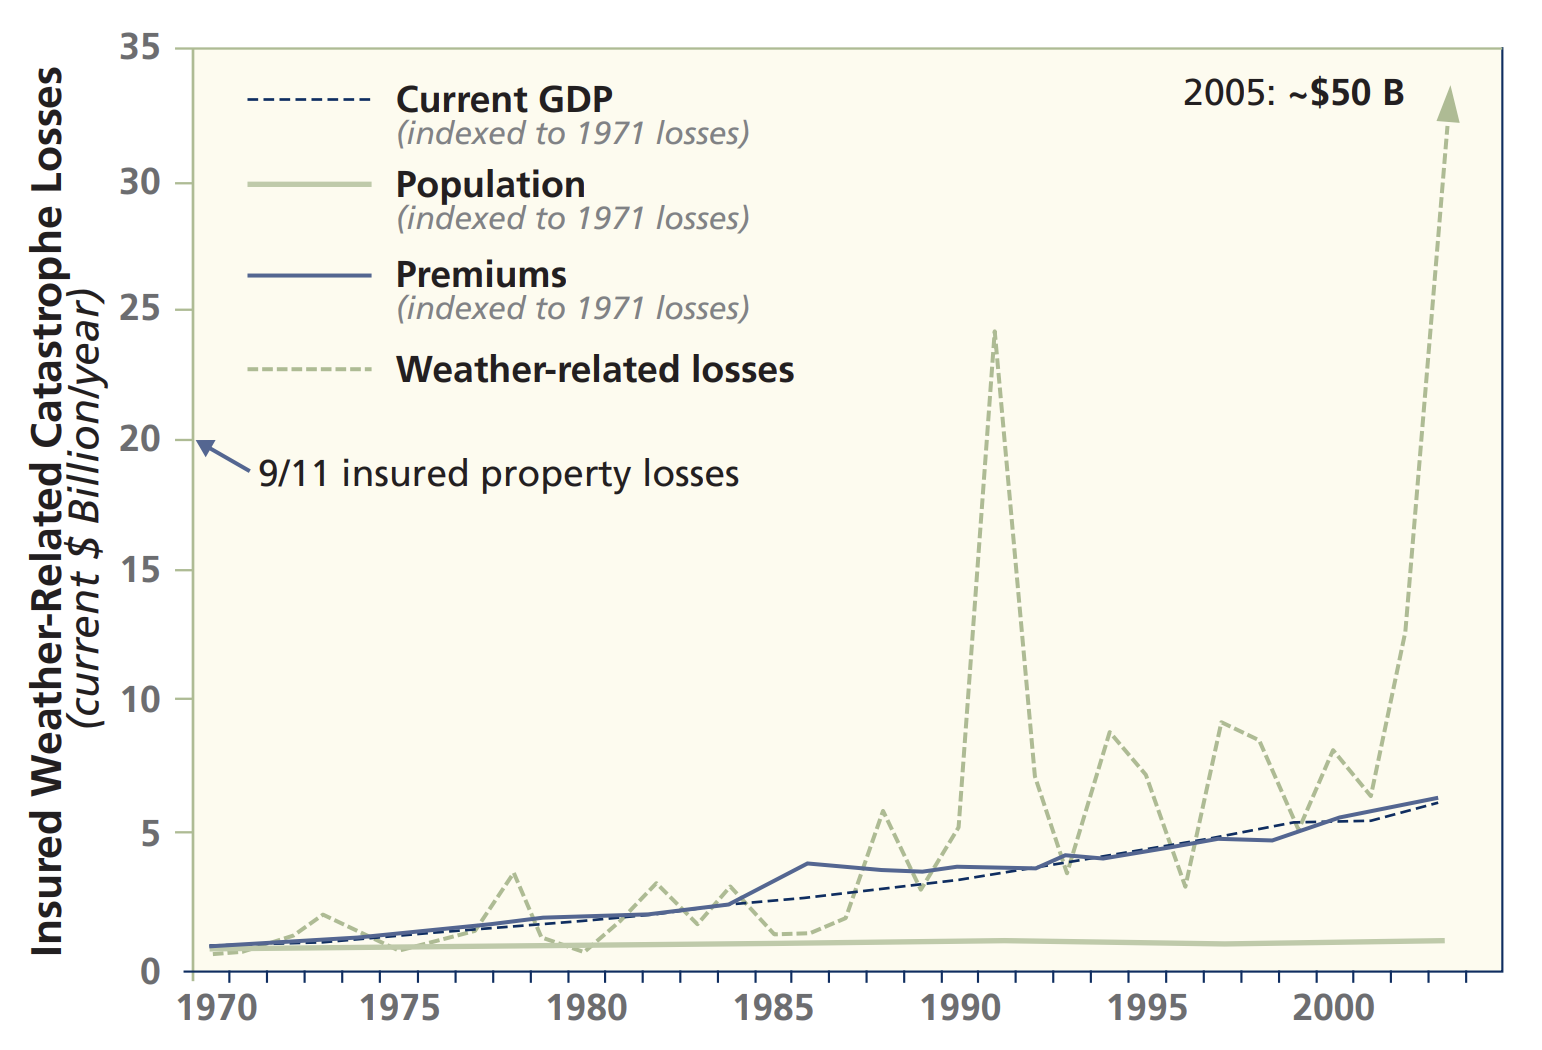 A chart showing insured weather-related catastrophe losses over time. GDP, premiums, and weather-related losses all rise over time. But in 1992 and 2005, the damager from weather-related losses spikes.